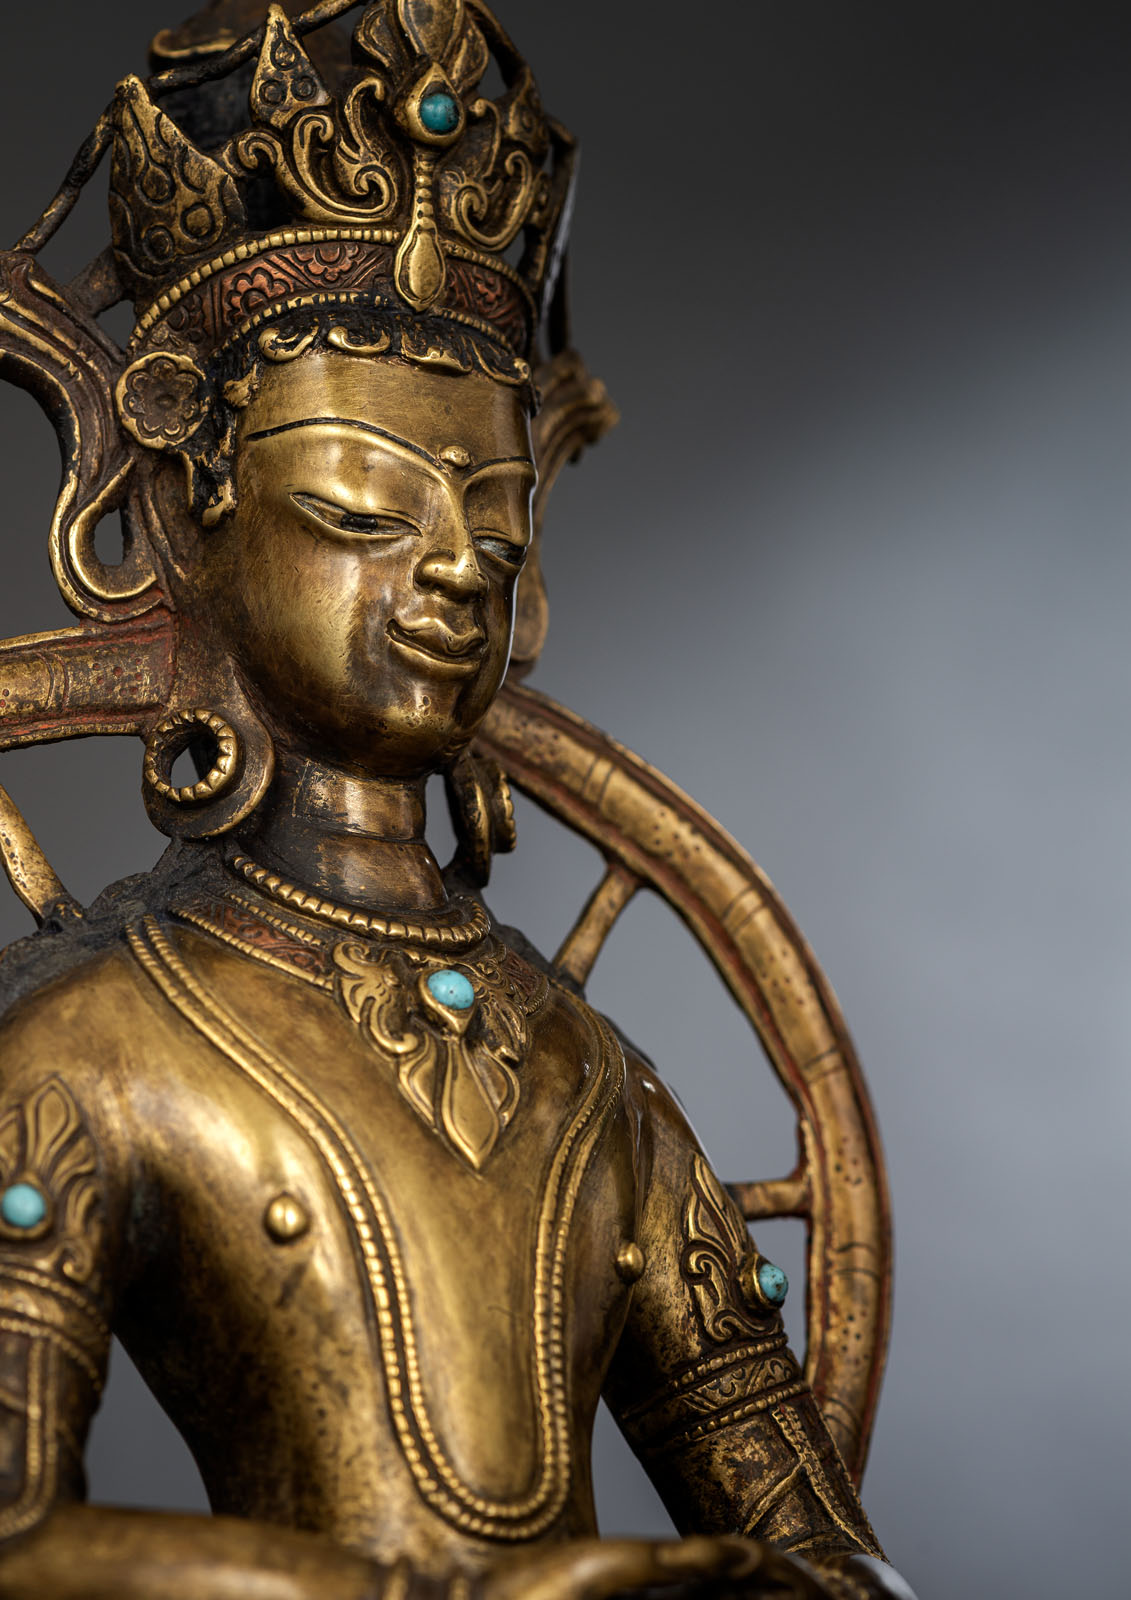 A FINE SILVER- AND COPPER-INLAID BRONZE FIGURE OF AMITABHA - Image 4 of 4